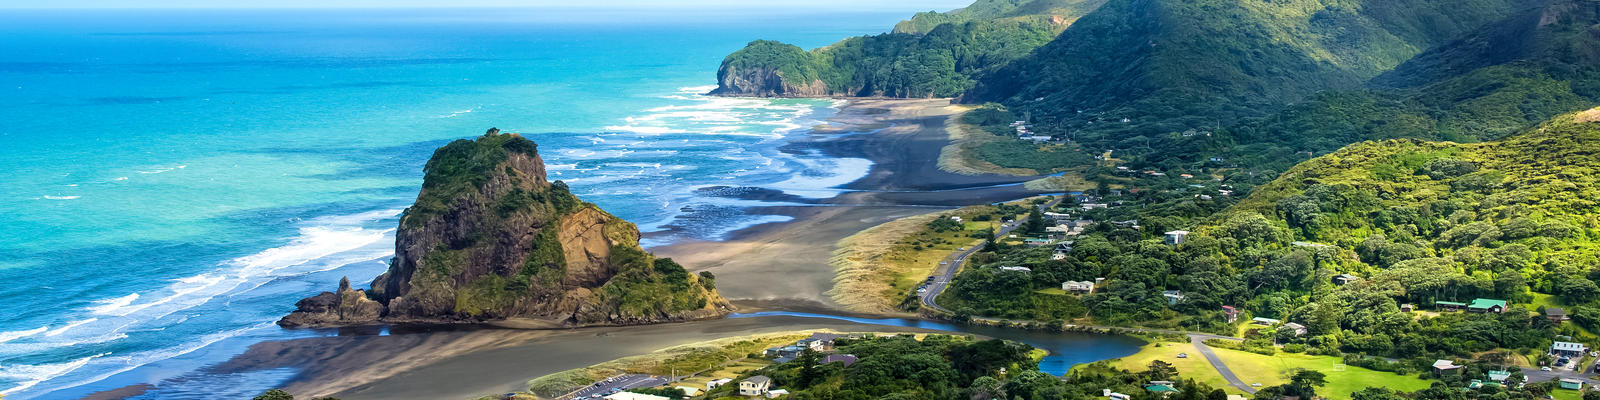 Piha Beach, West Coast in Auckland, New Zealand (Photo: gracethang2/Shutterstock)